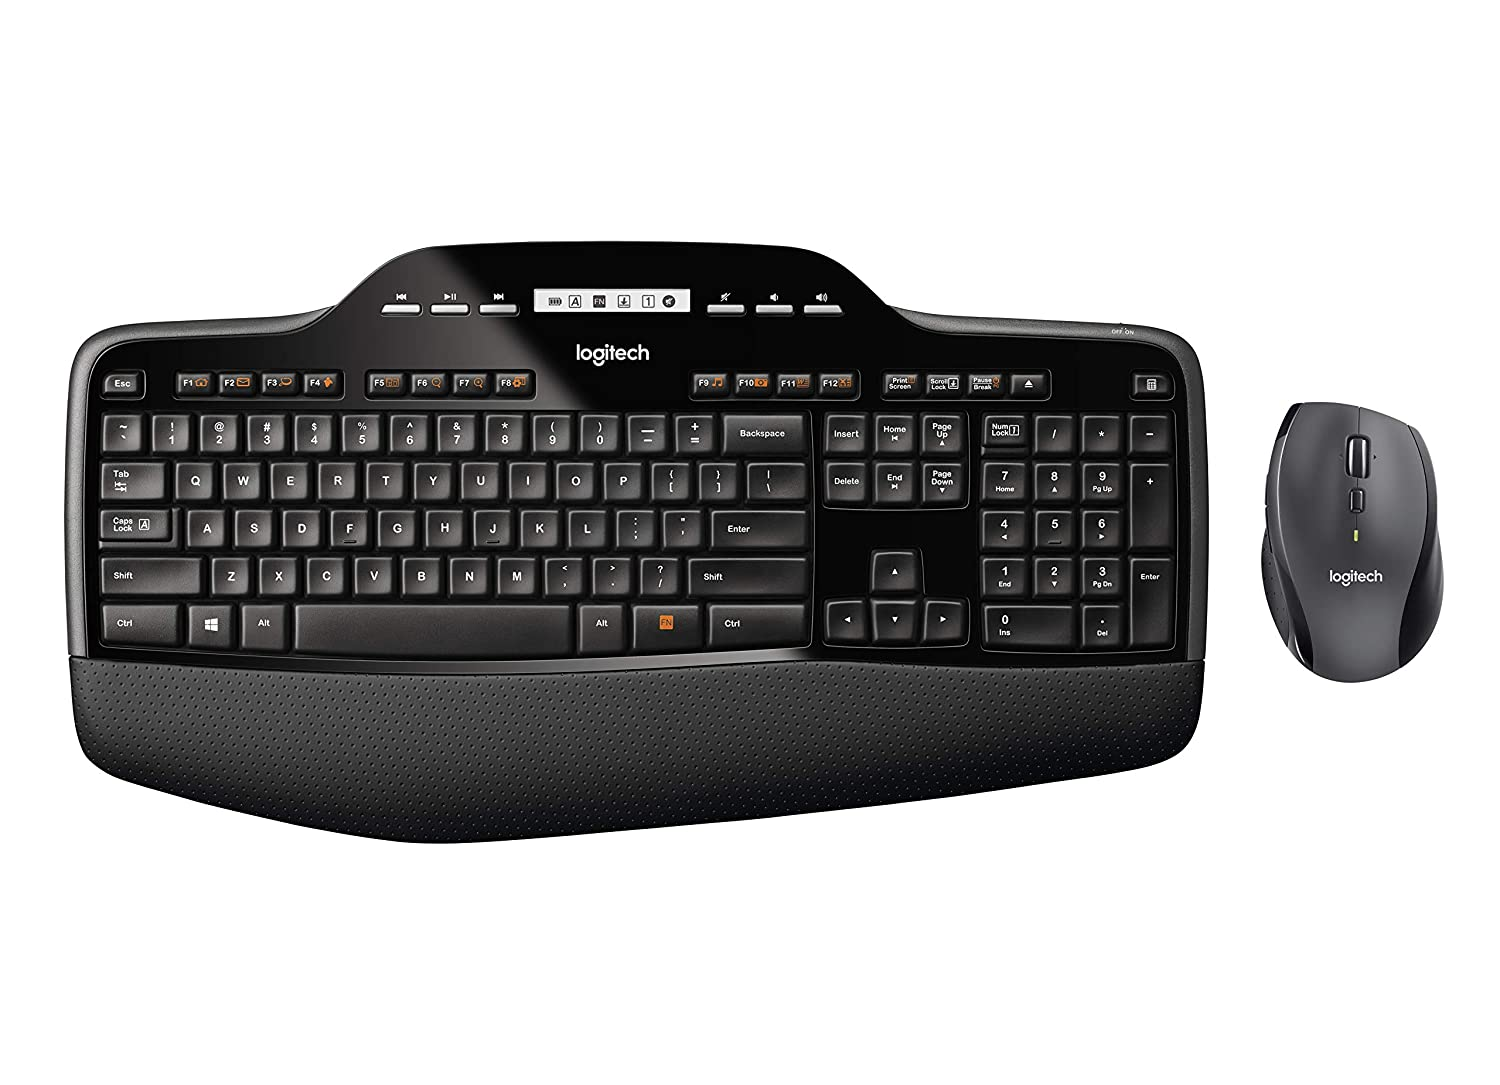 Logitech MK710 Wireless Keyboard and Mouse Combo — Includes Keyboard and Mouse, Stylish Design, Built-In LCD Status Dashboard, Long Battery Life